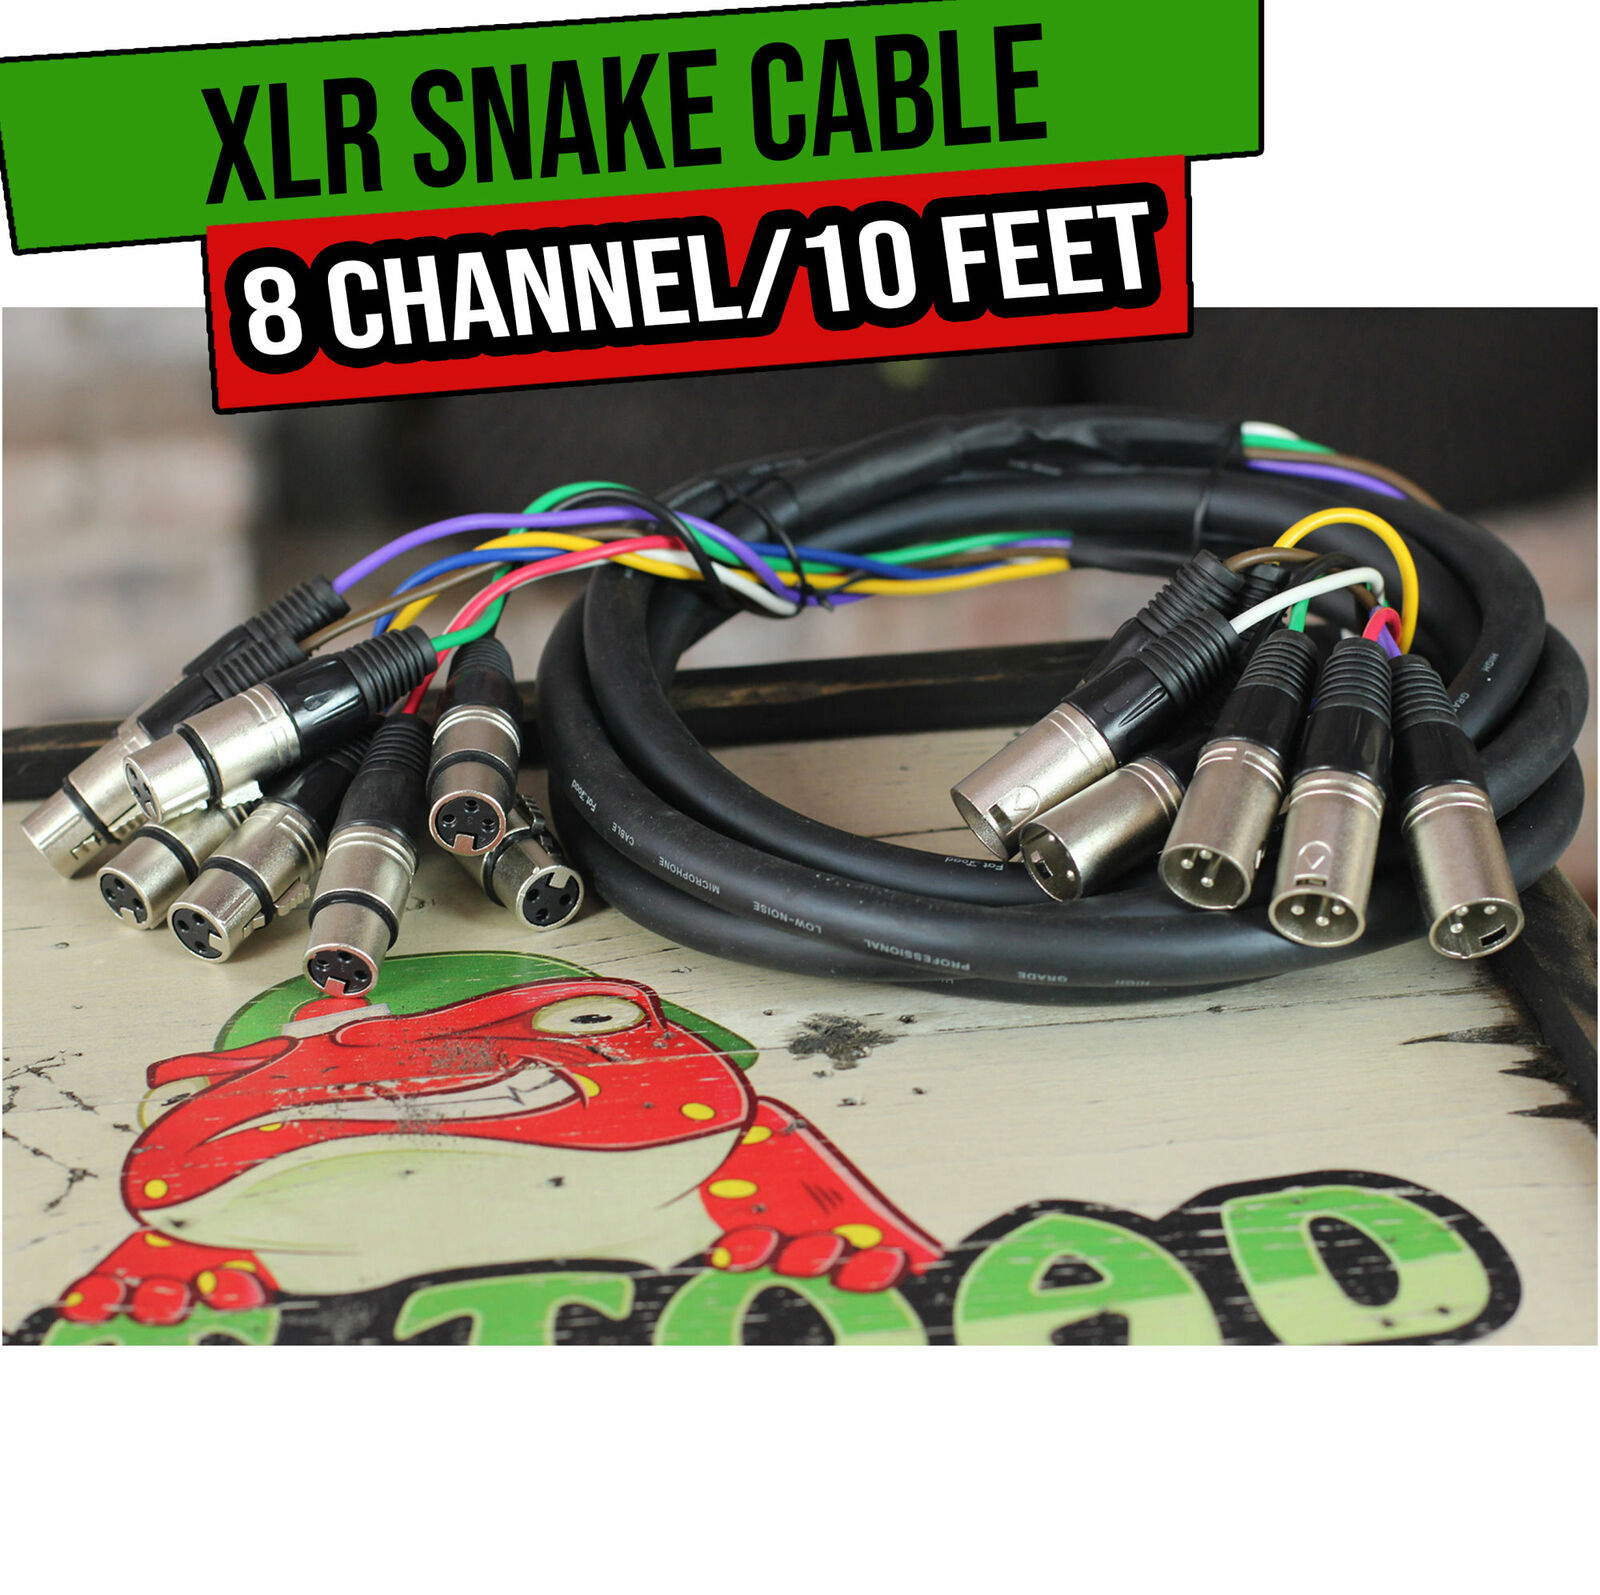 XLR Snake Cable Patch - FAT TOAD 8-Channel Pro Audio Mic Cord Mixer Sound Stage. Buy it now for 30.00